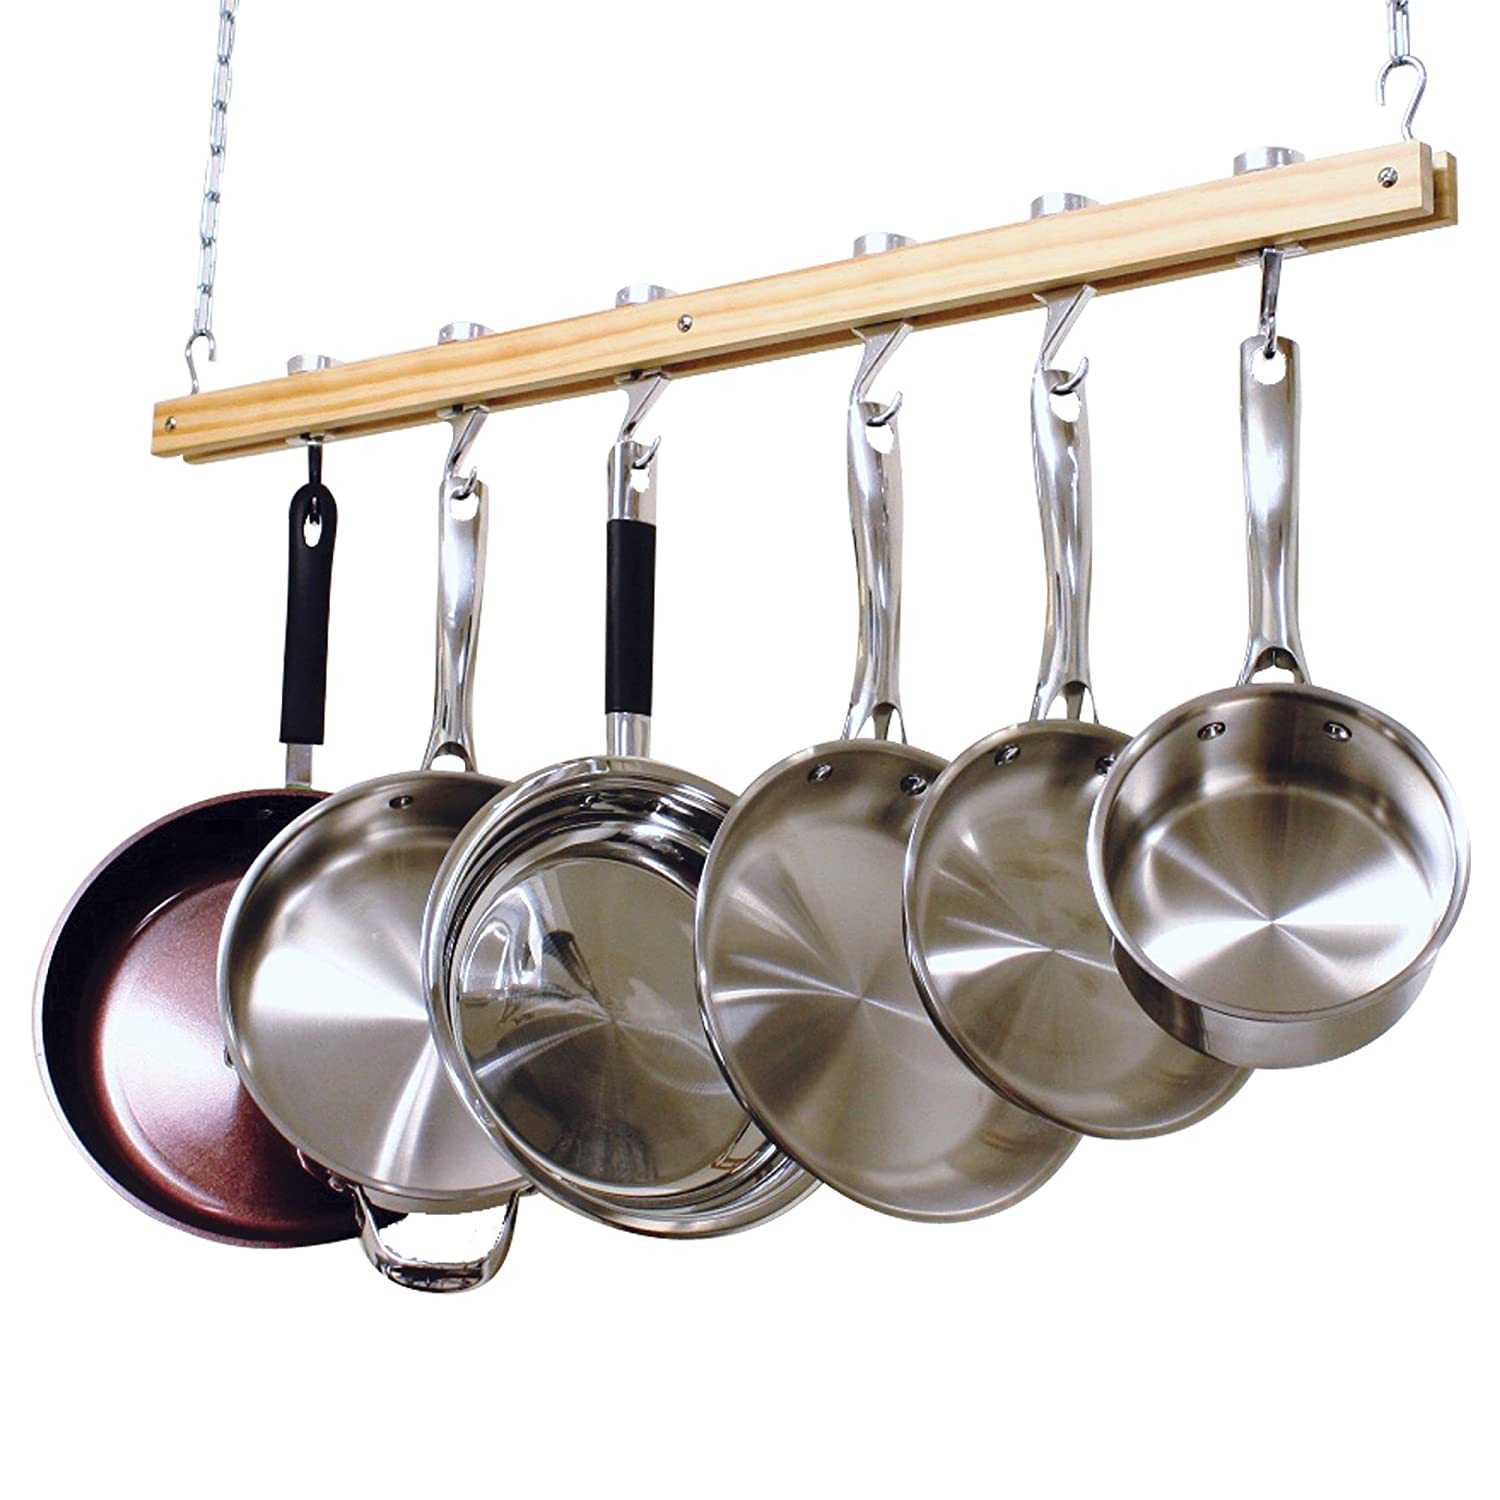 hang pots secure lighted hooks and with allows rack reinforced grids pot lights solid to pin